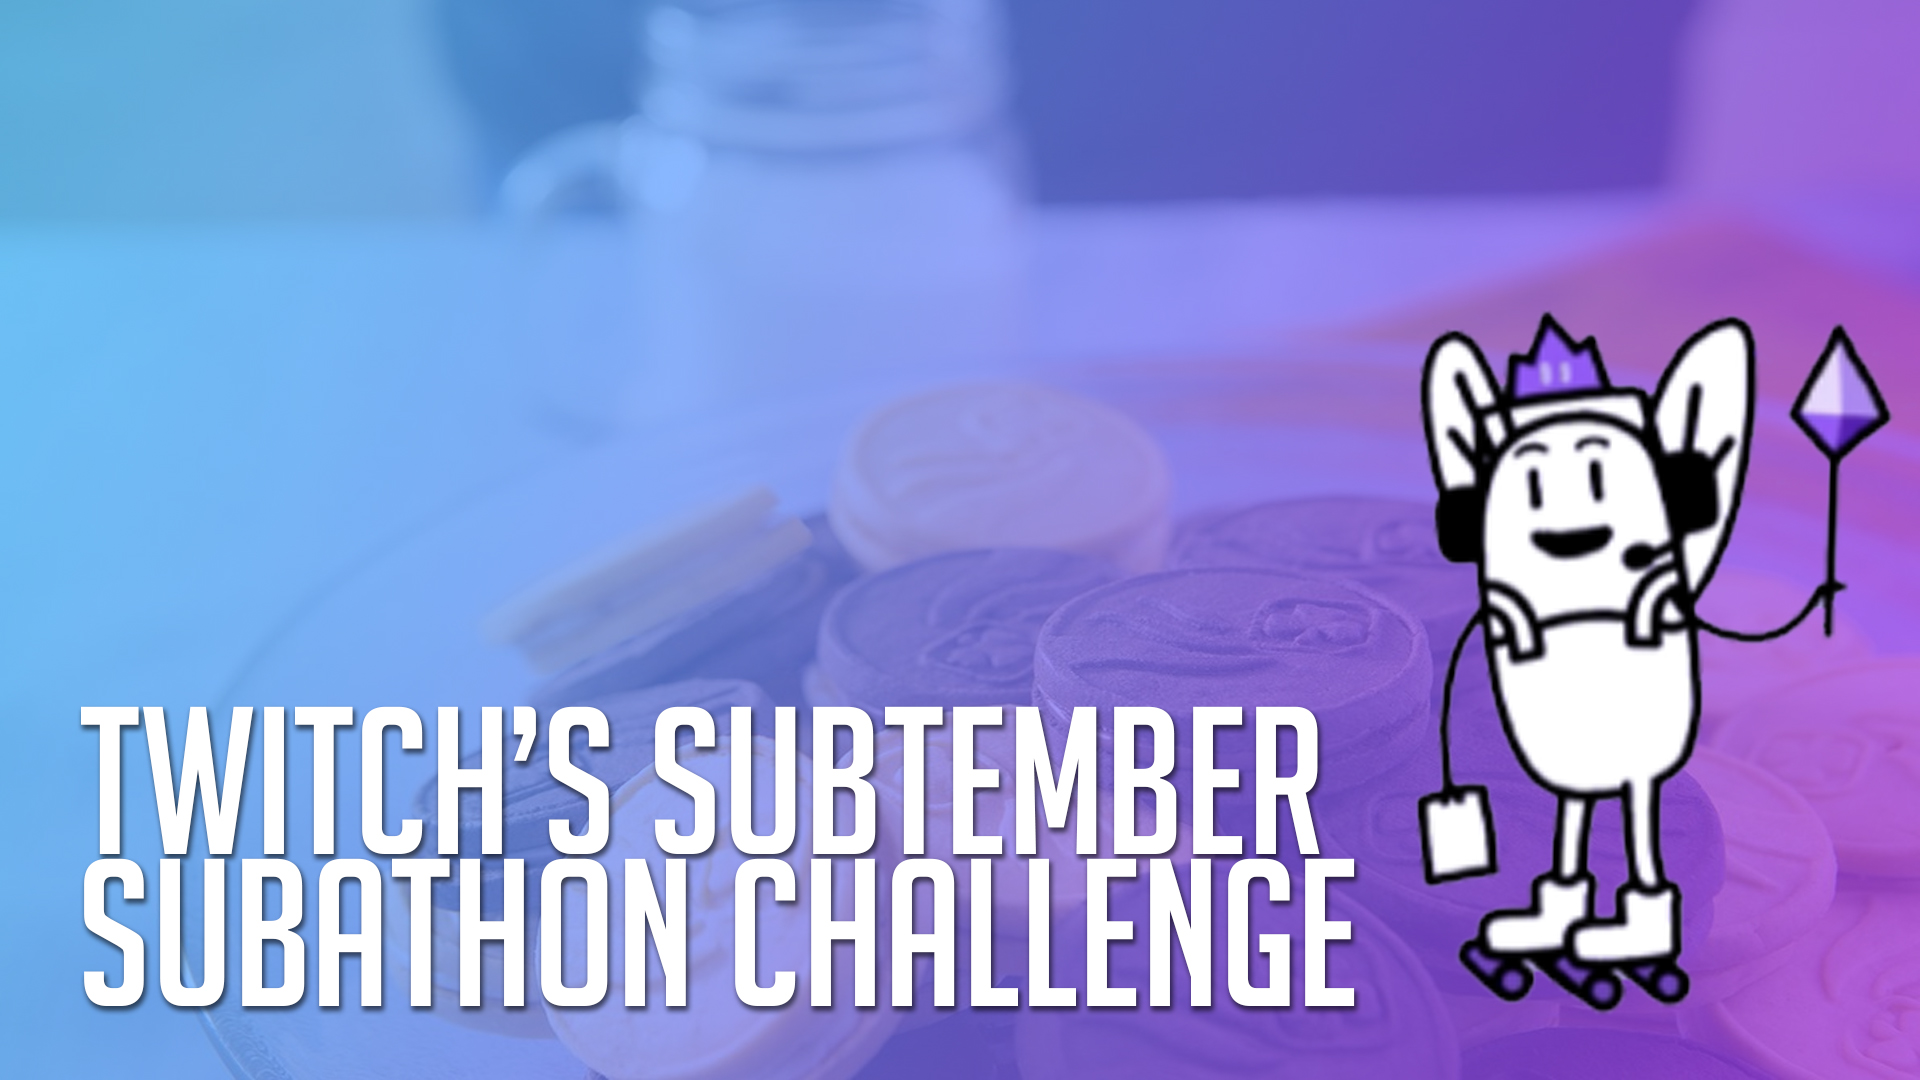 Check out the Twitch Subtember Subathon Challenge